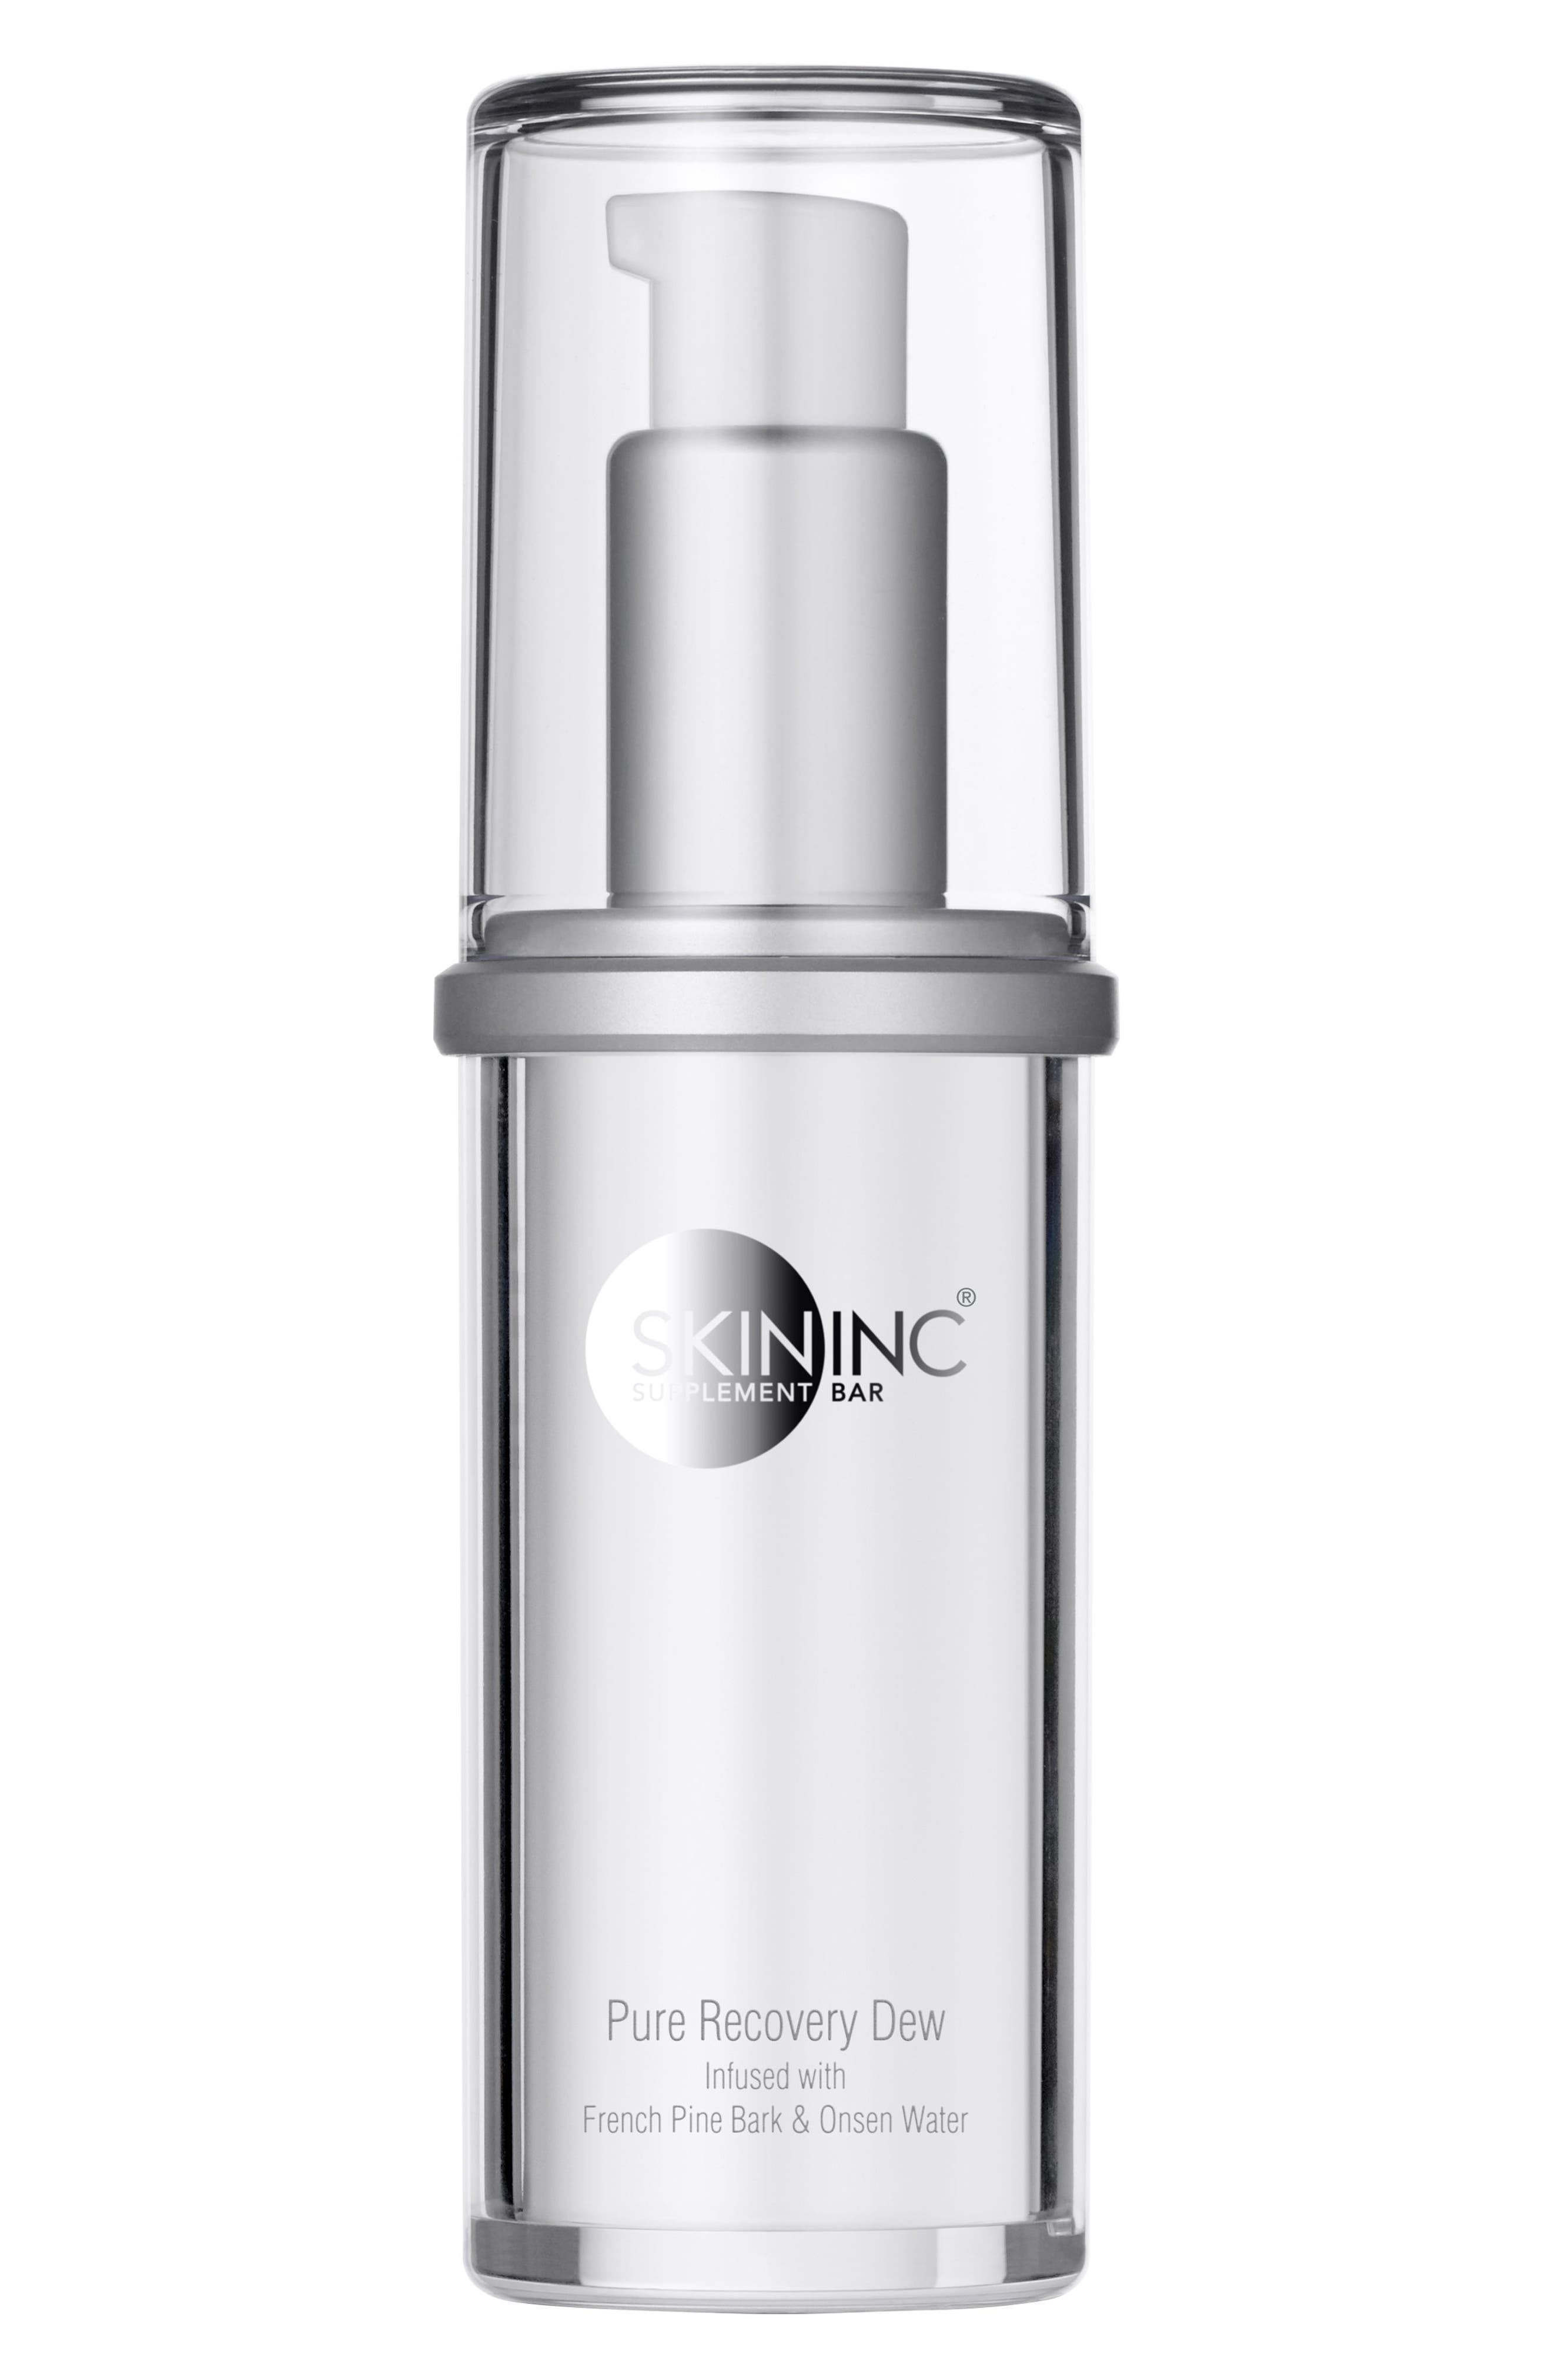 Skin Inc. Pure Recovery Dew